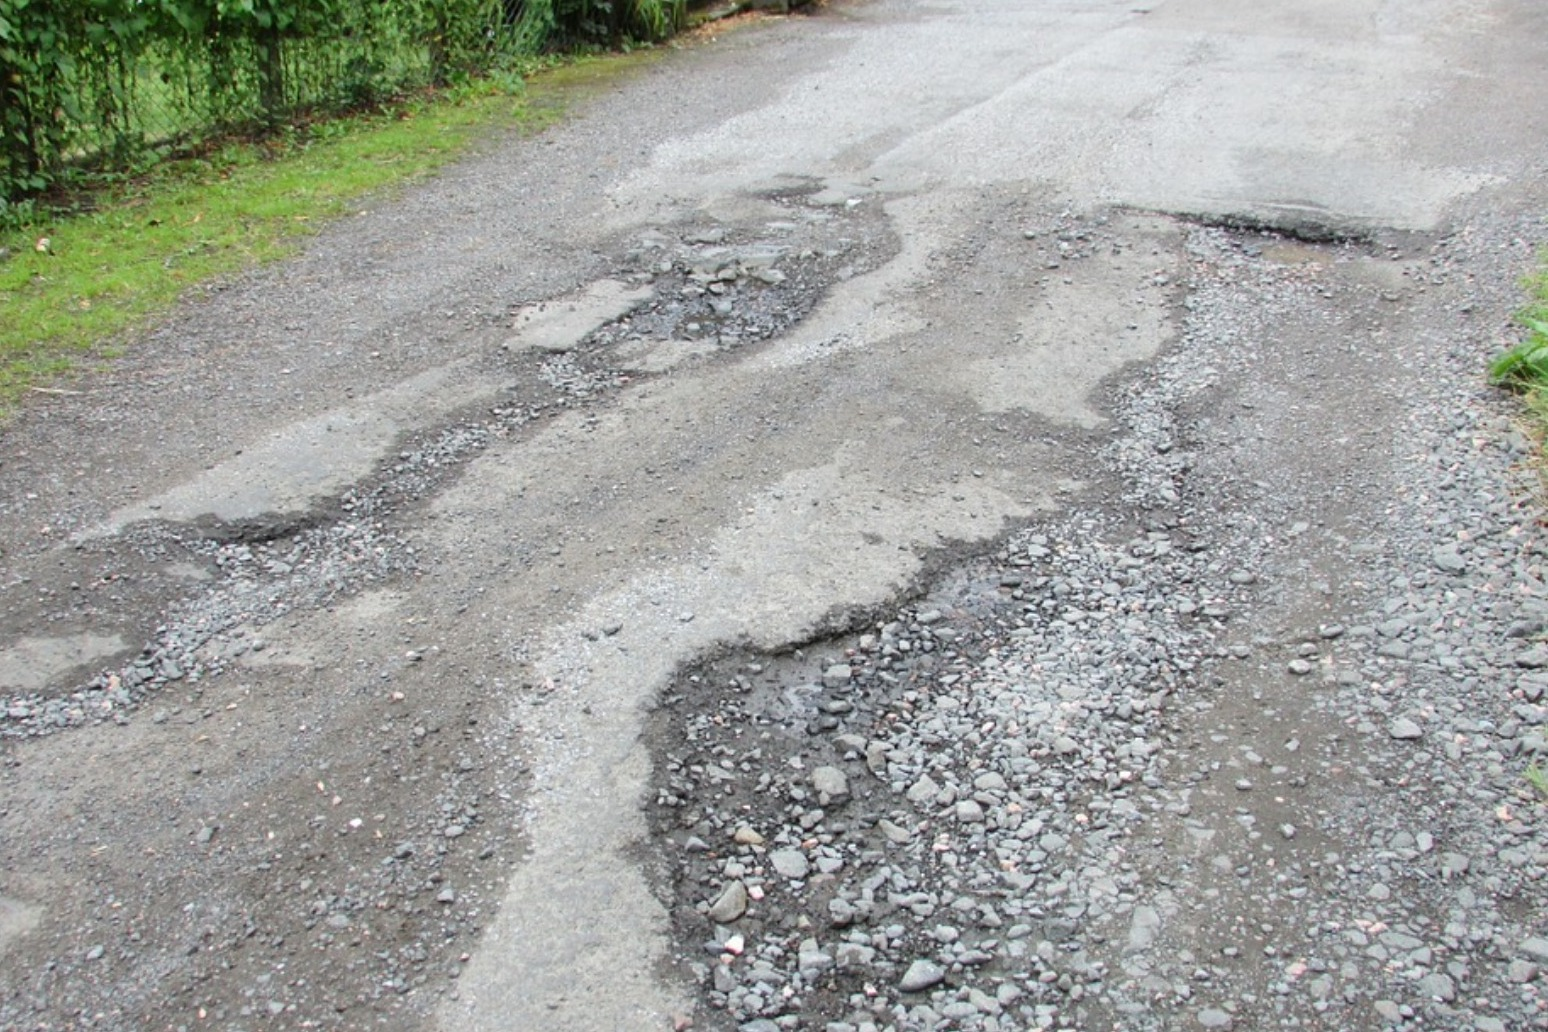 £201 million road repair fund to resurface extra 1,000 miles